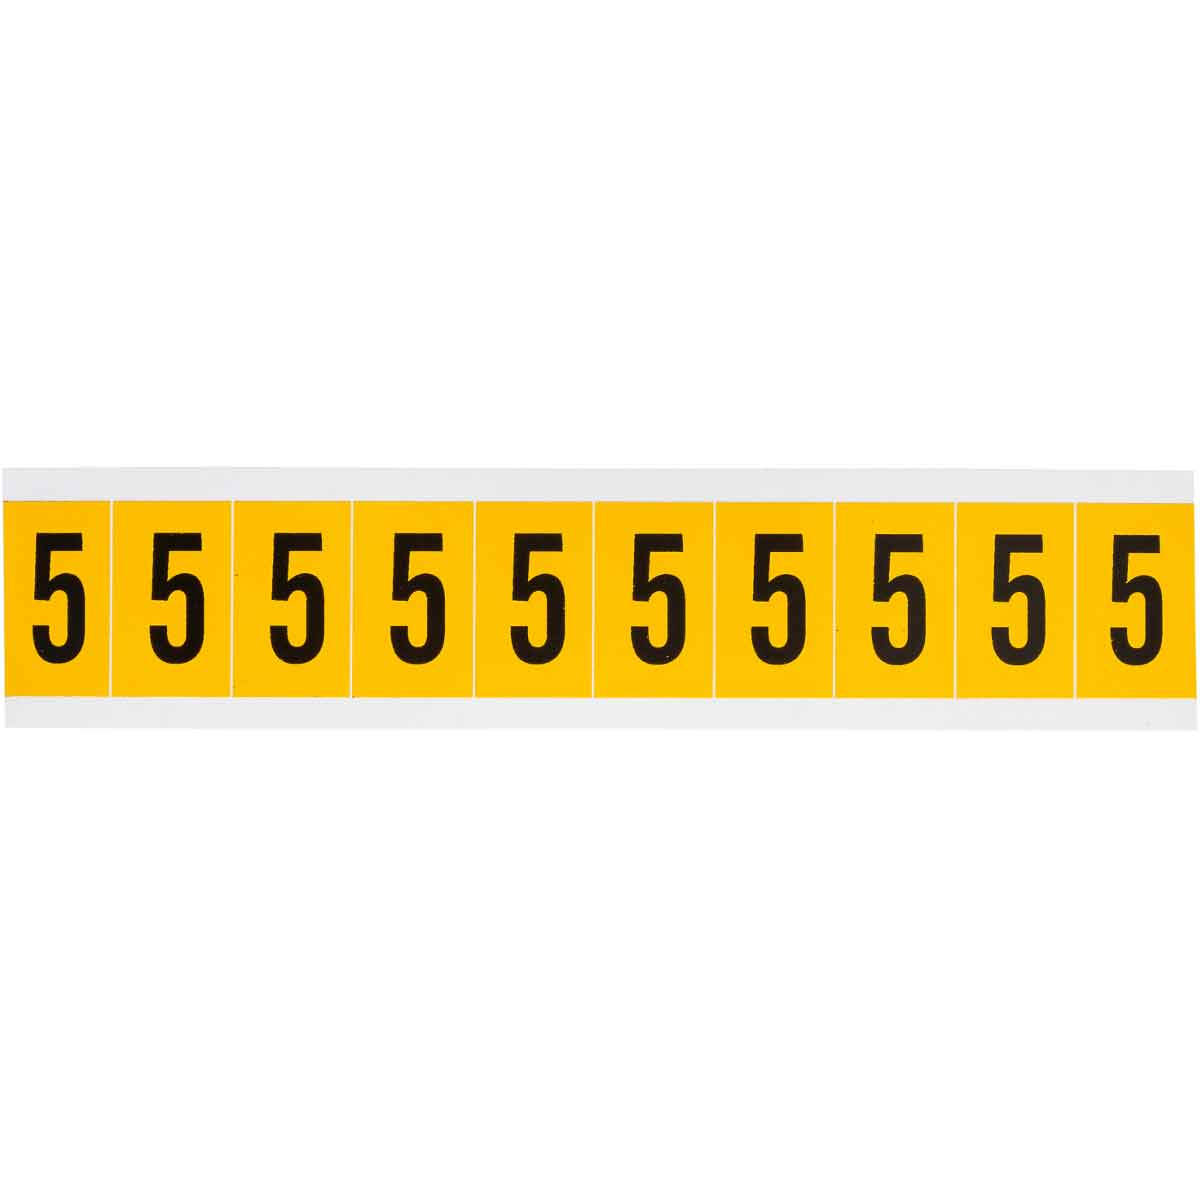 BRADY 1530-5 15 Series Number &Letter Card